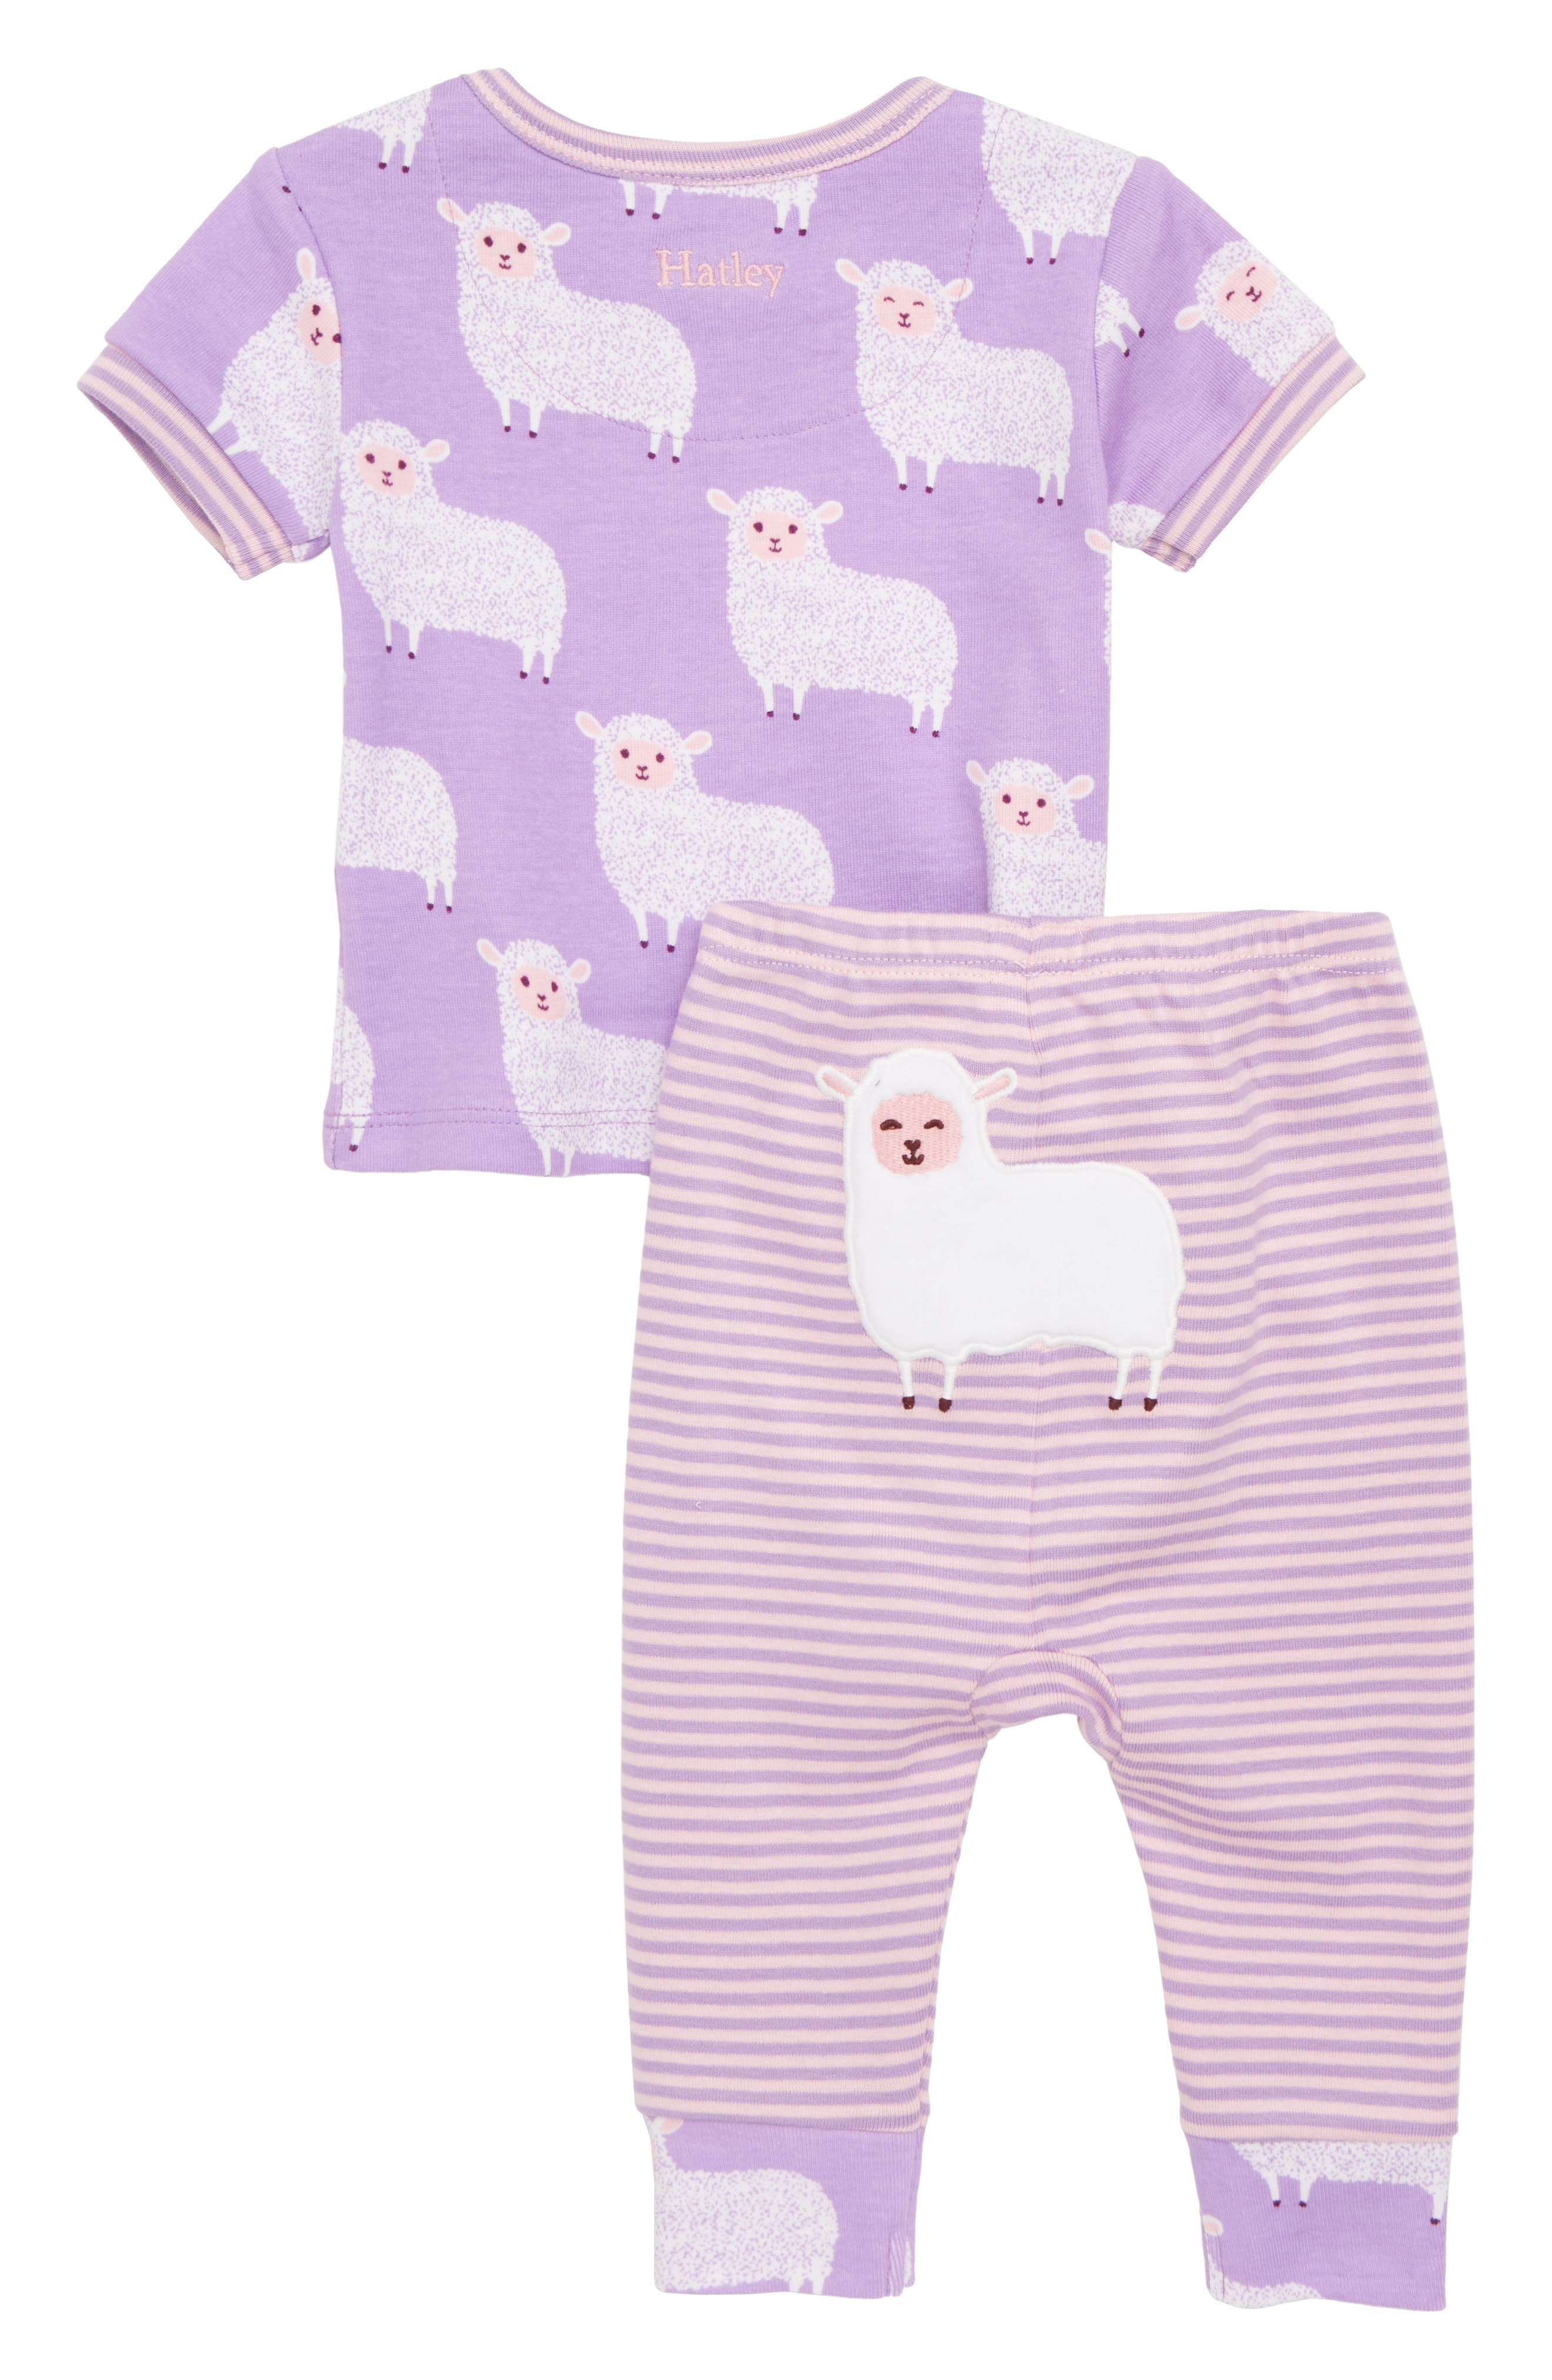 Counting Sheep Fitted Two-Piece Pajamas,                             Alternate thumbnail 3, color,                             Counting Sheep